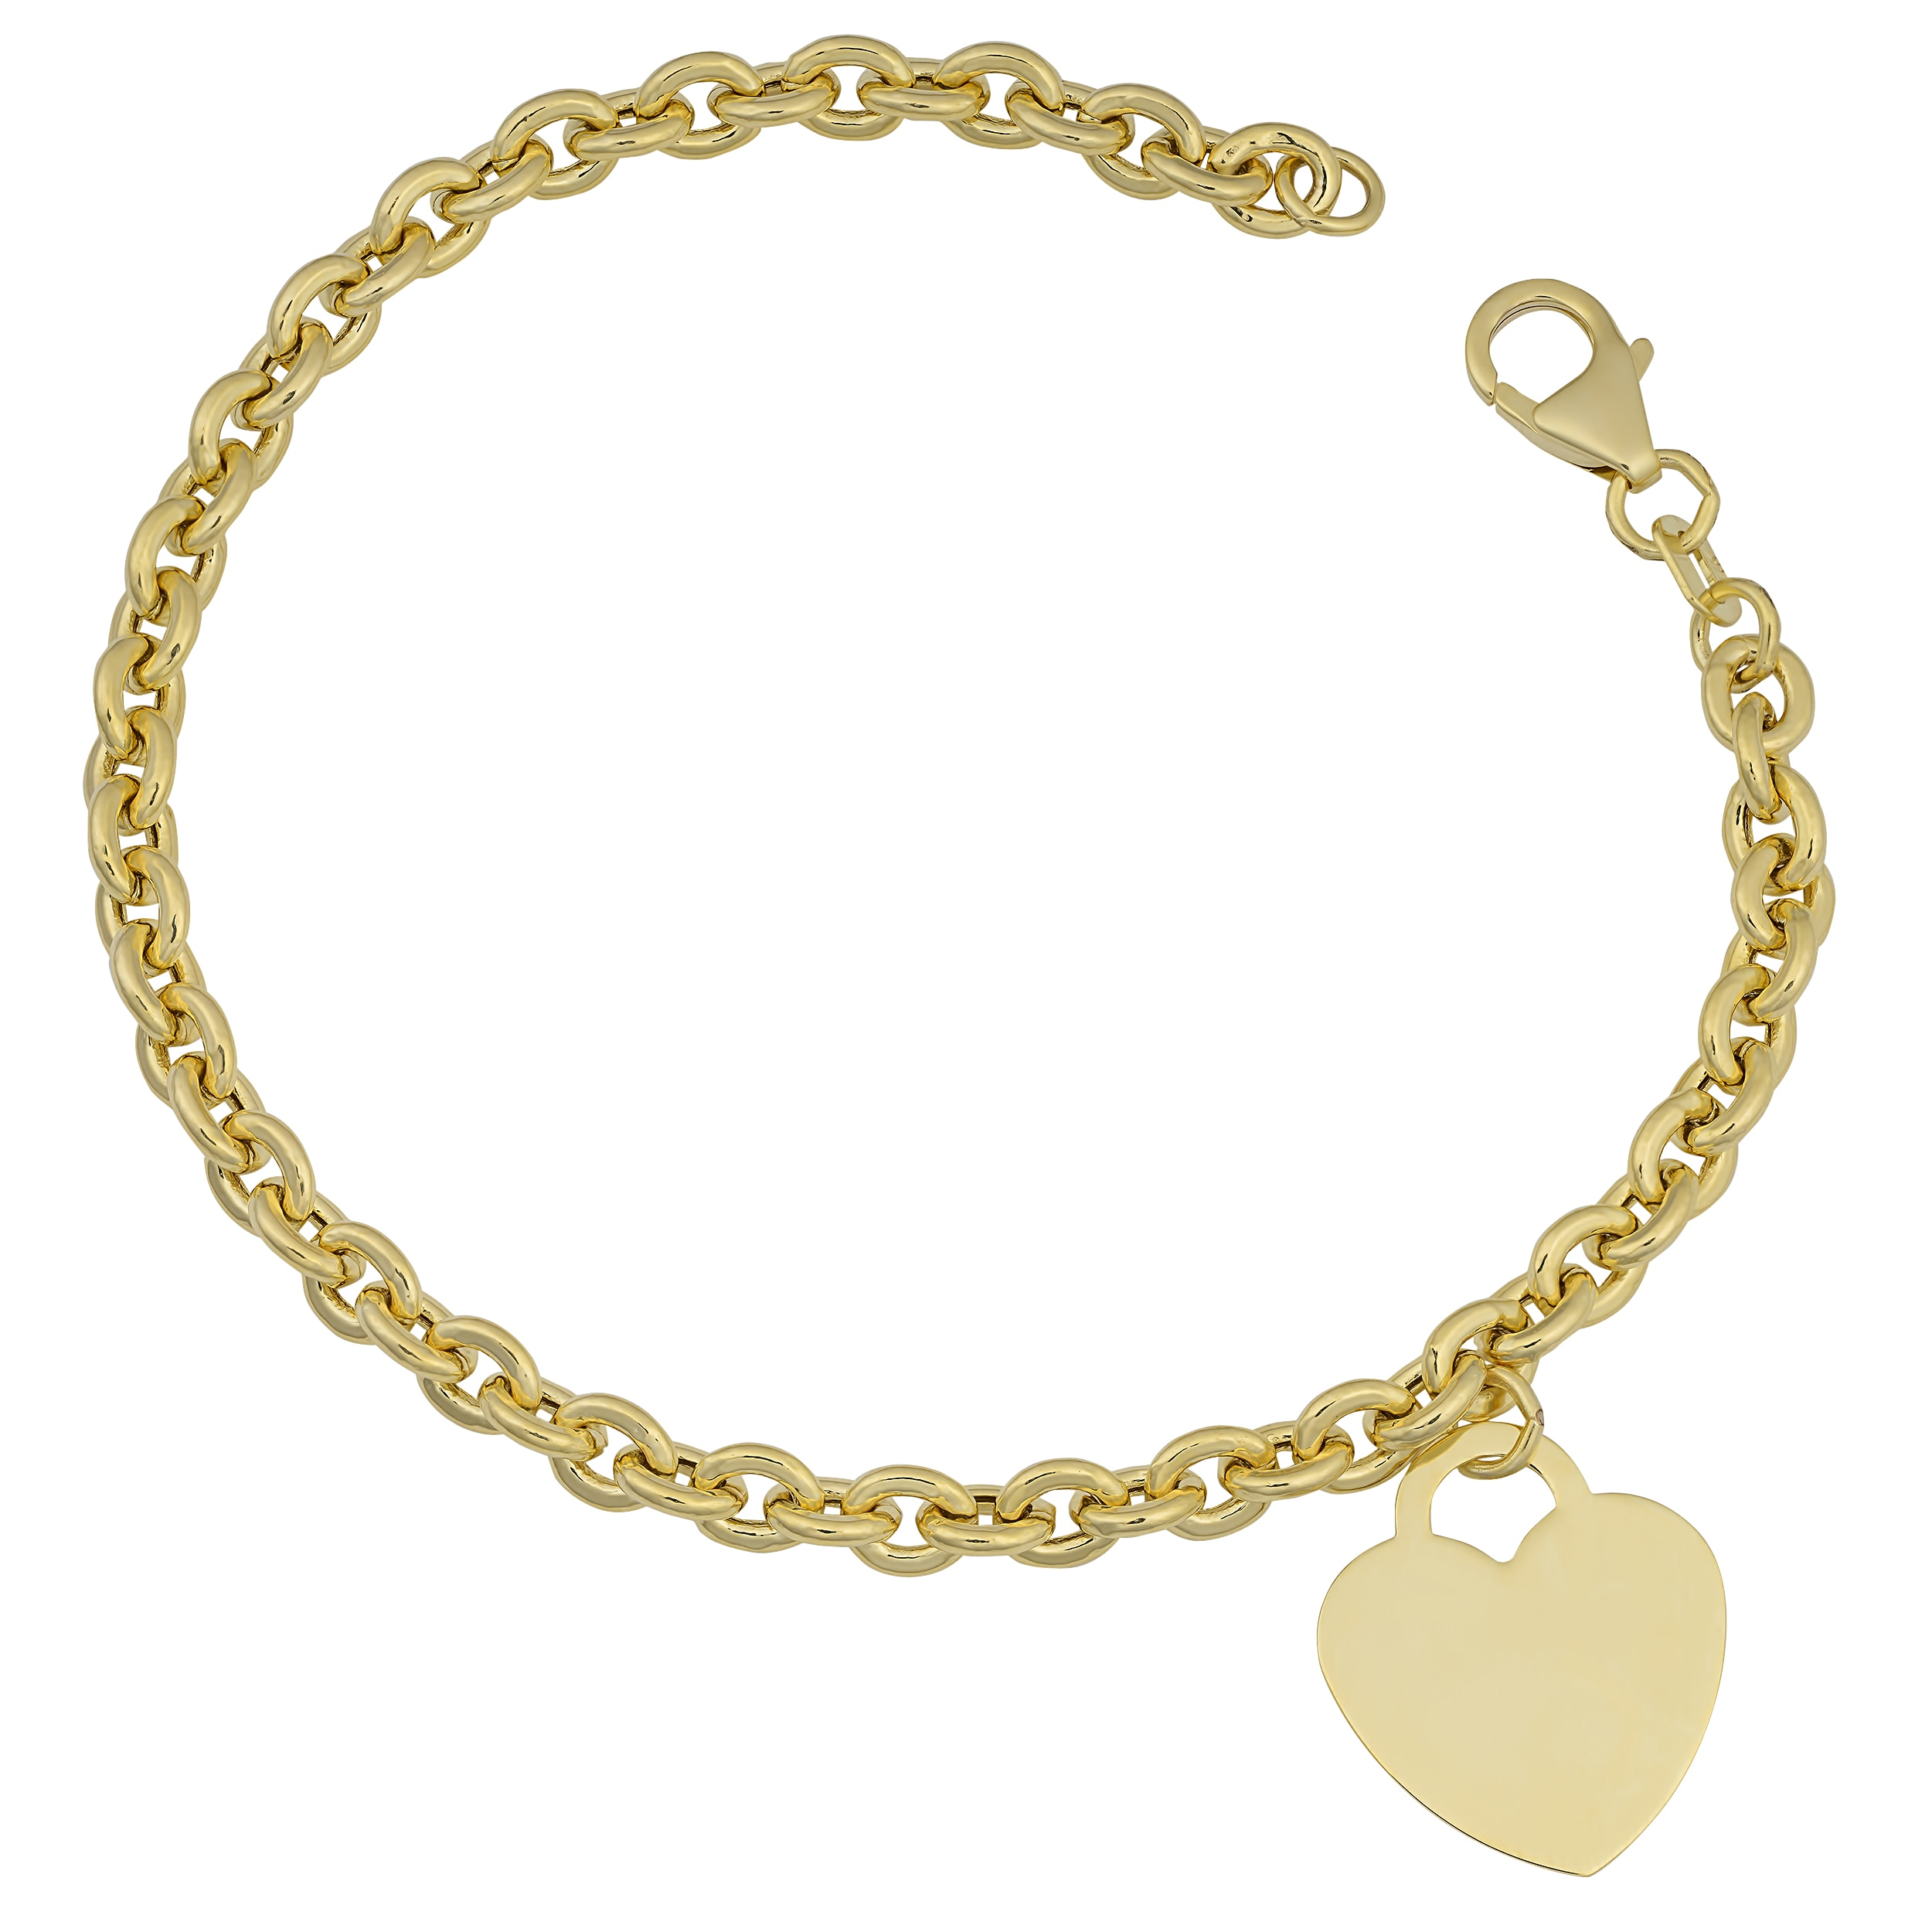 tag co k to in new return bangle cute bracelet large boxes charm gold heart tiffany